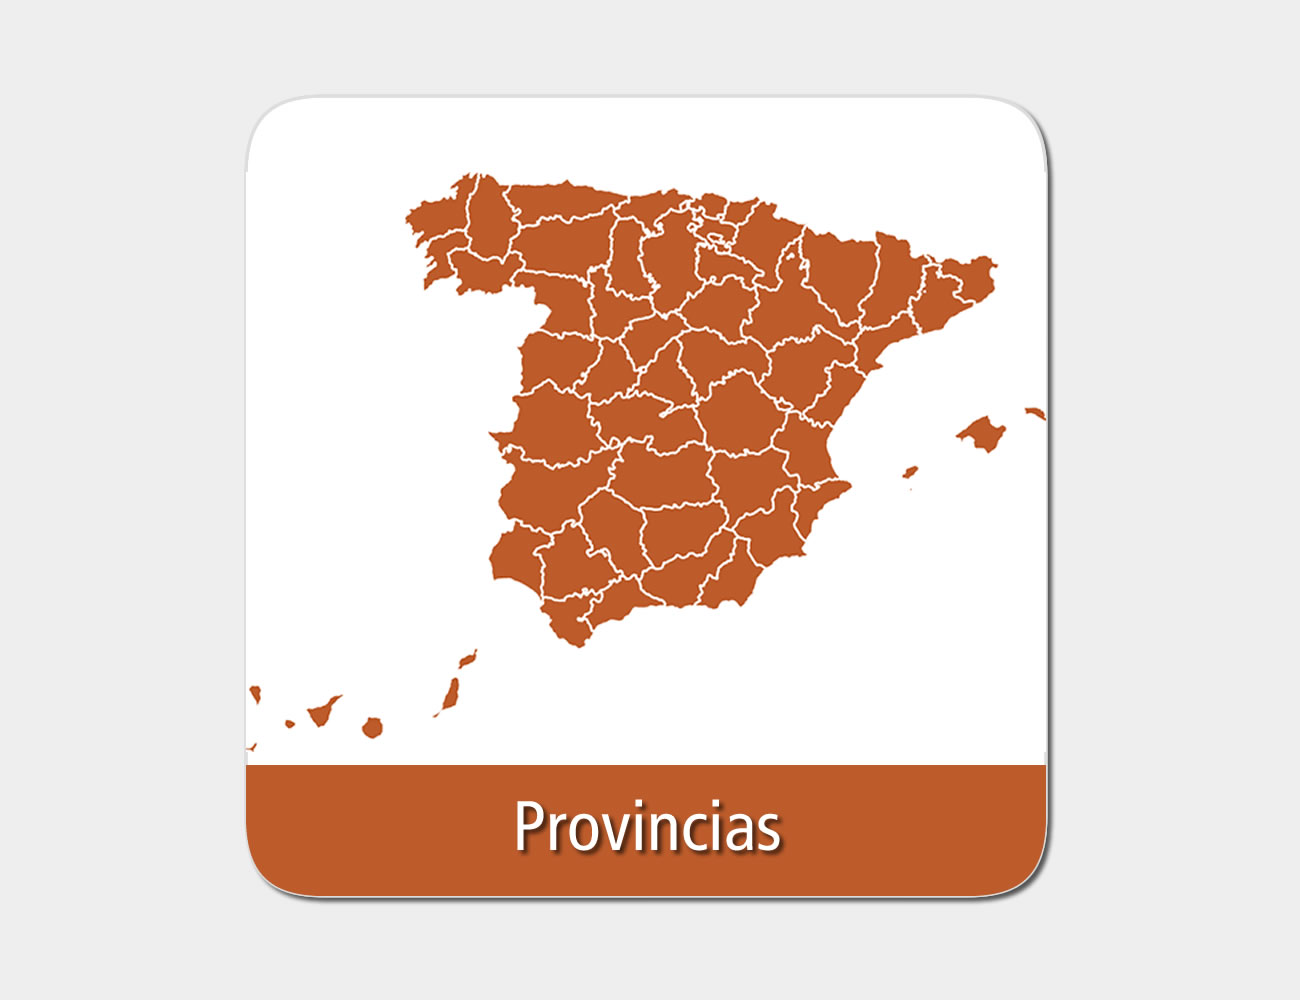 provincias_over